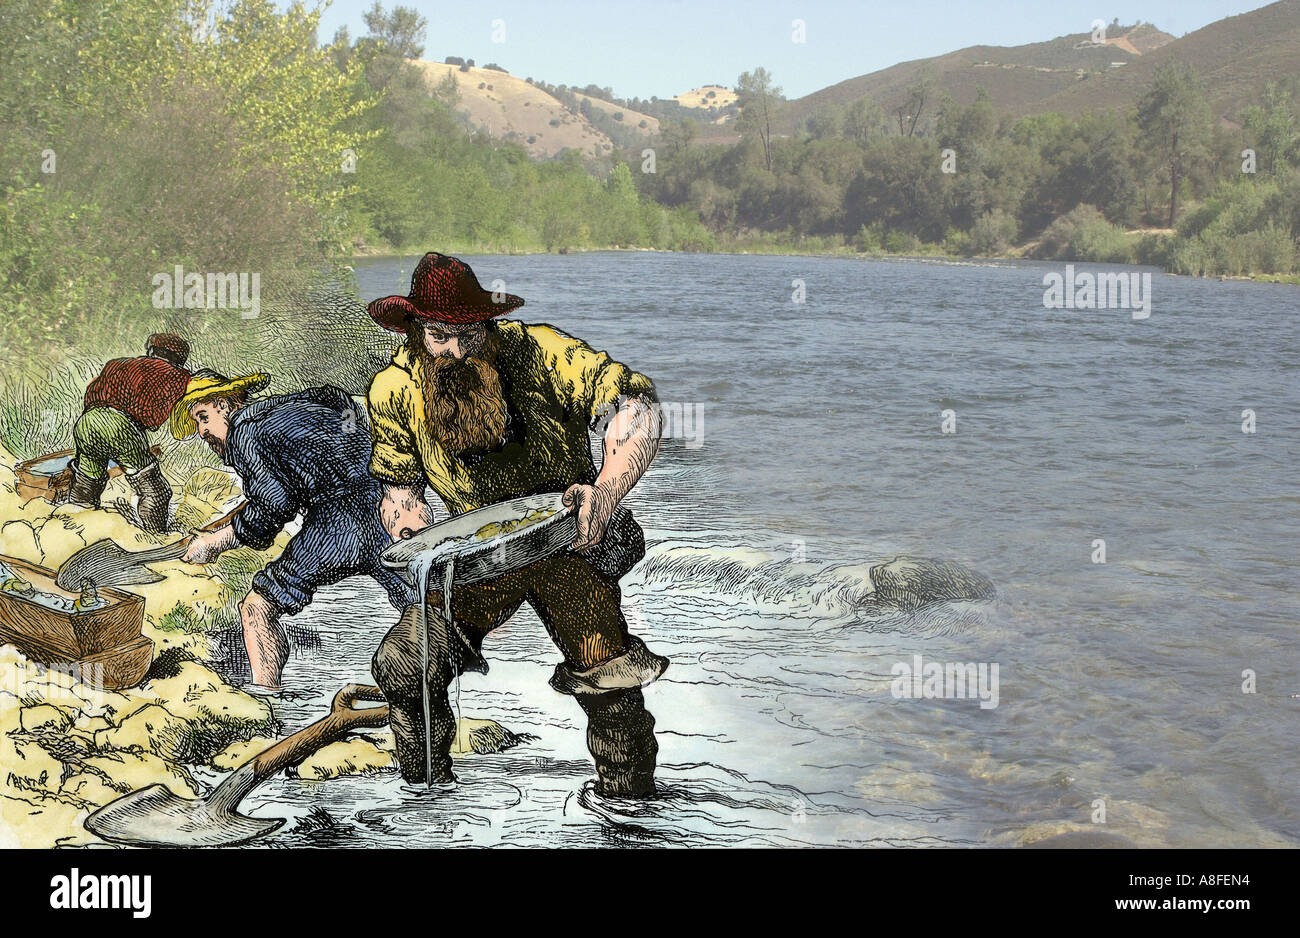 Prospector panning for gold near Sutters Mill in the American River in Coloma California. Hand-colored woodcut with a photo of the American River - Stock Image